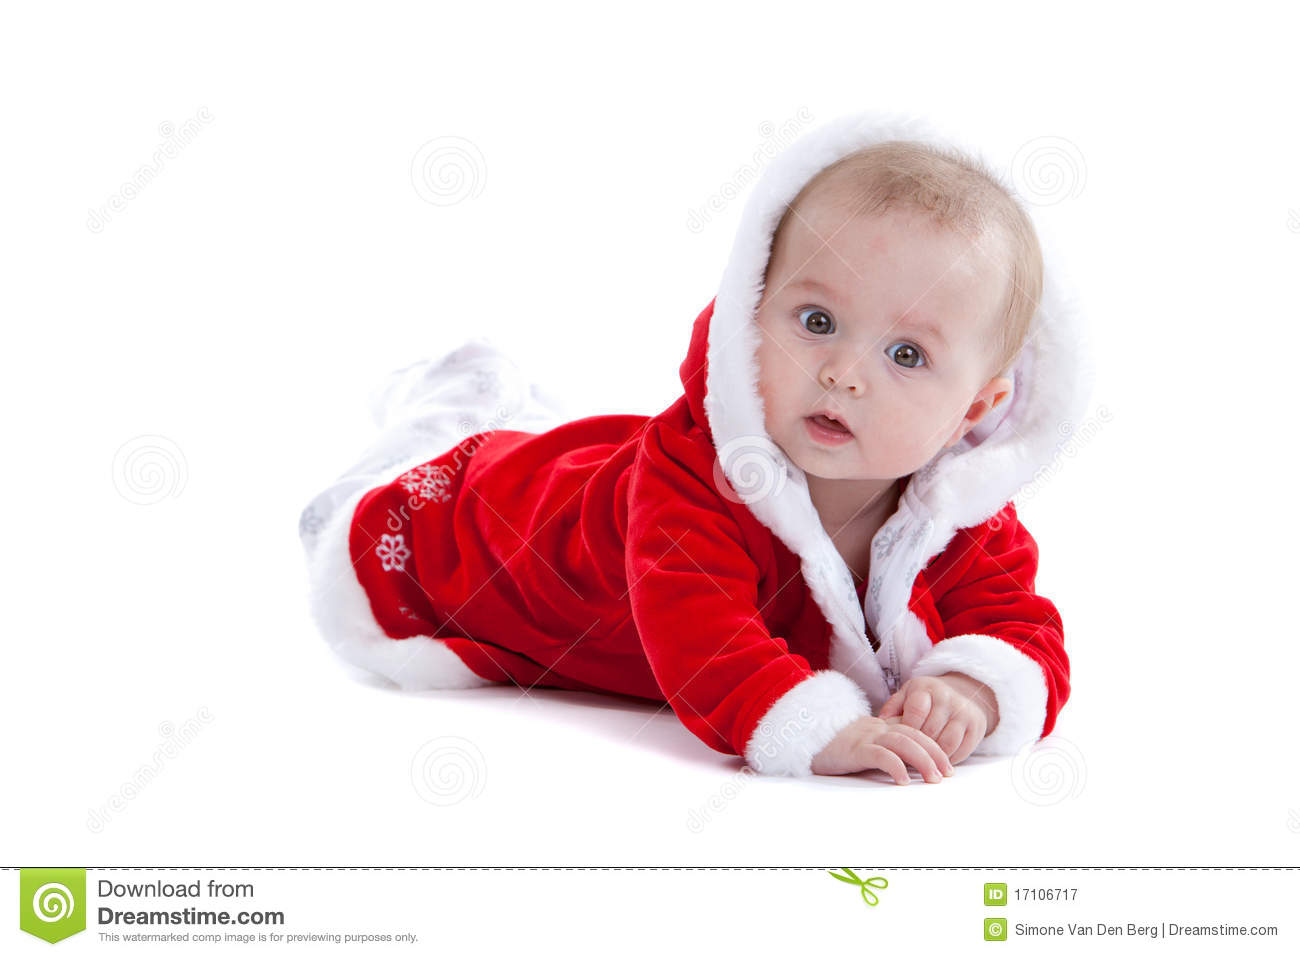 Christmas Baby Images Hd.Cute Christmas Baby Stock Image Image Of Xmas Cute 17106717